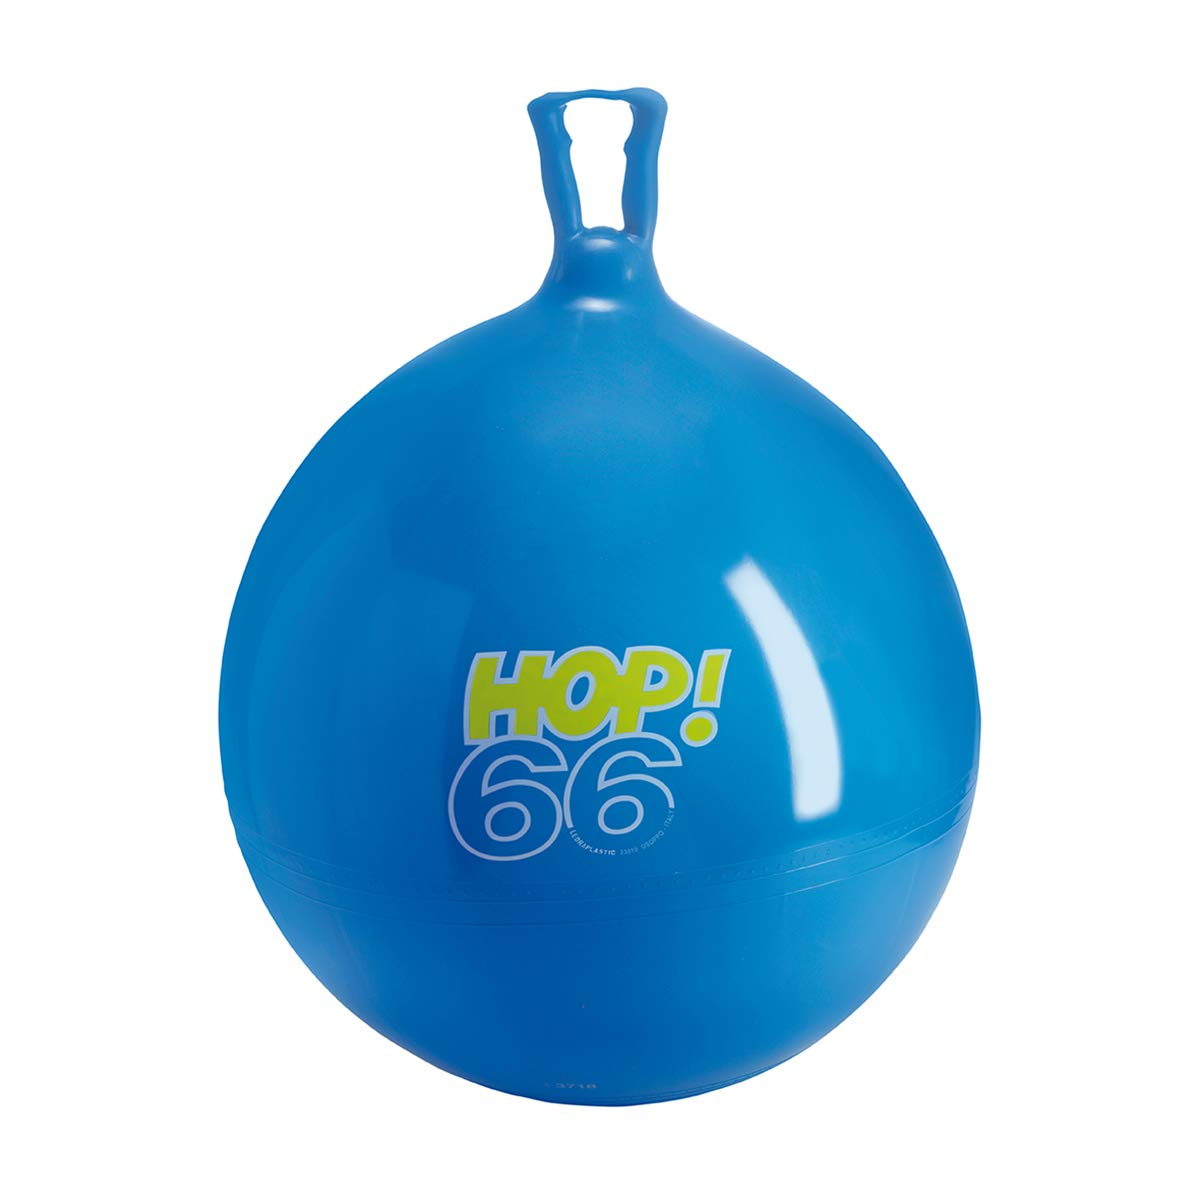 Gymnic / Hop-66 26'' Hop Ball, Blue by Gymnic